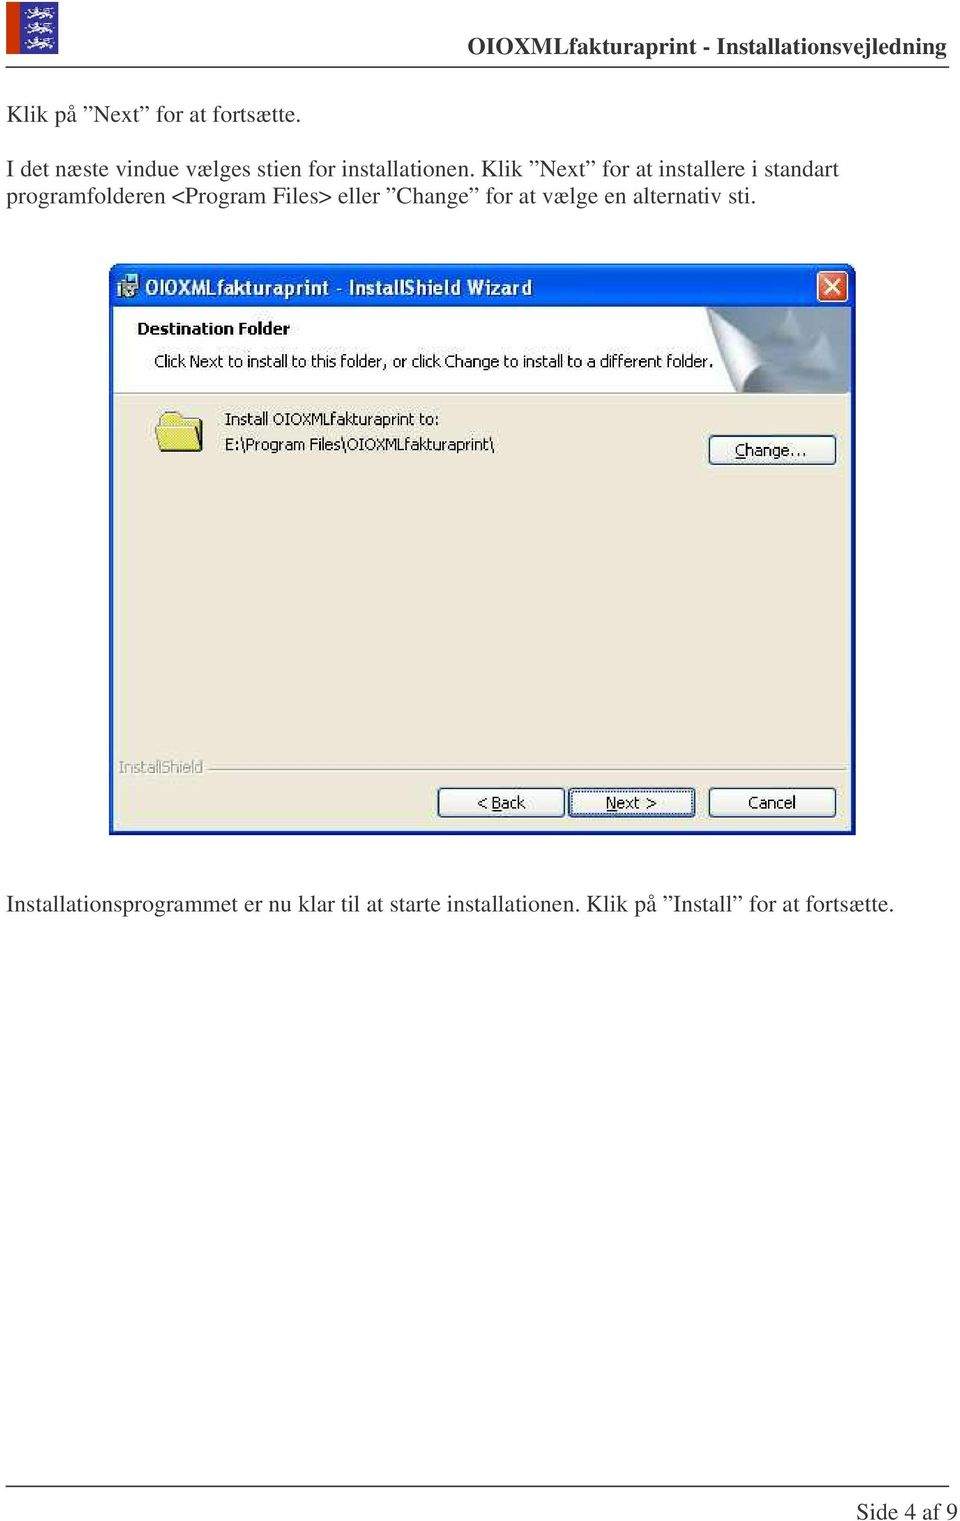 Klik Next for at installere i standart programfolderen <Program Files> eller